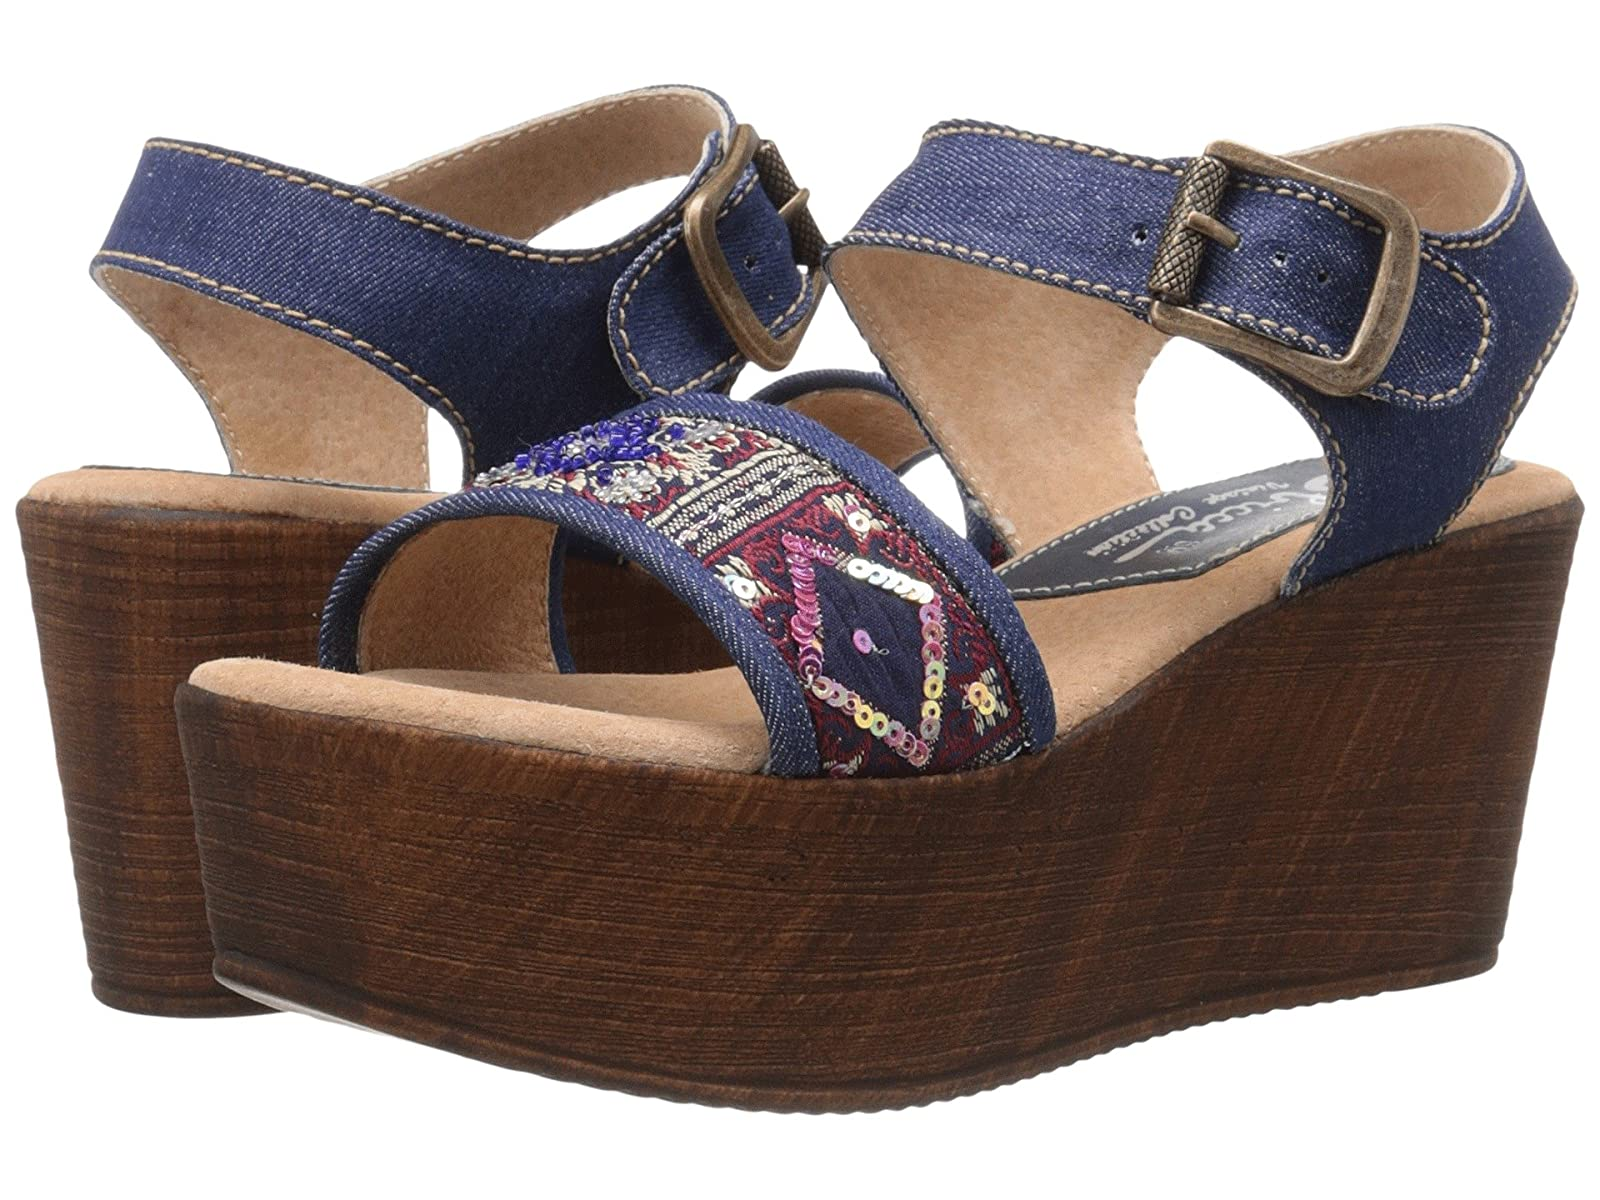 Sbicca TampaCheap and distinctive eye-catching shoes